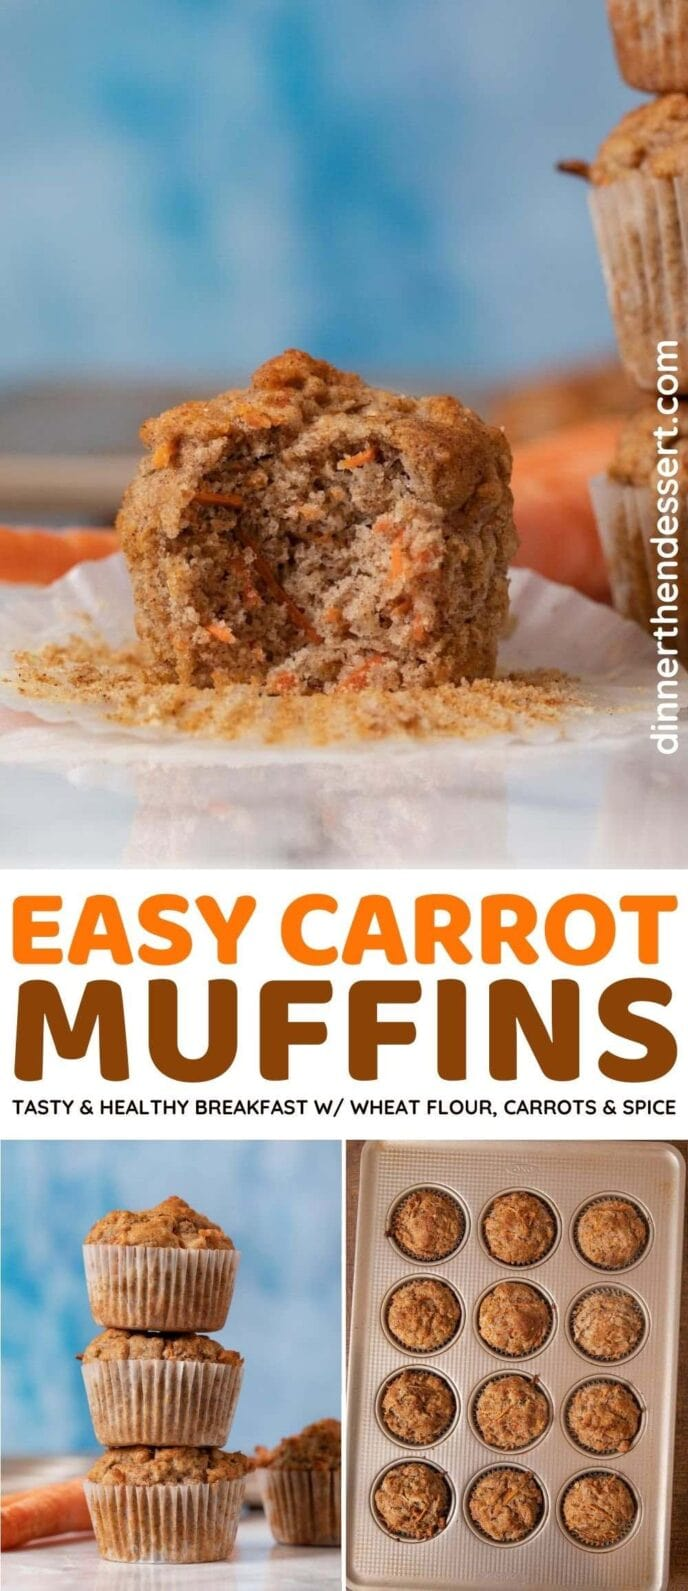 Easy Carrot Muffins collage